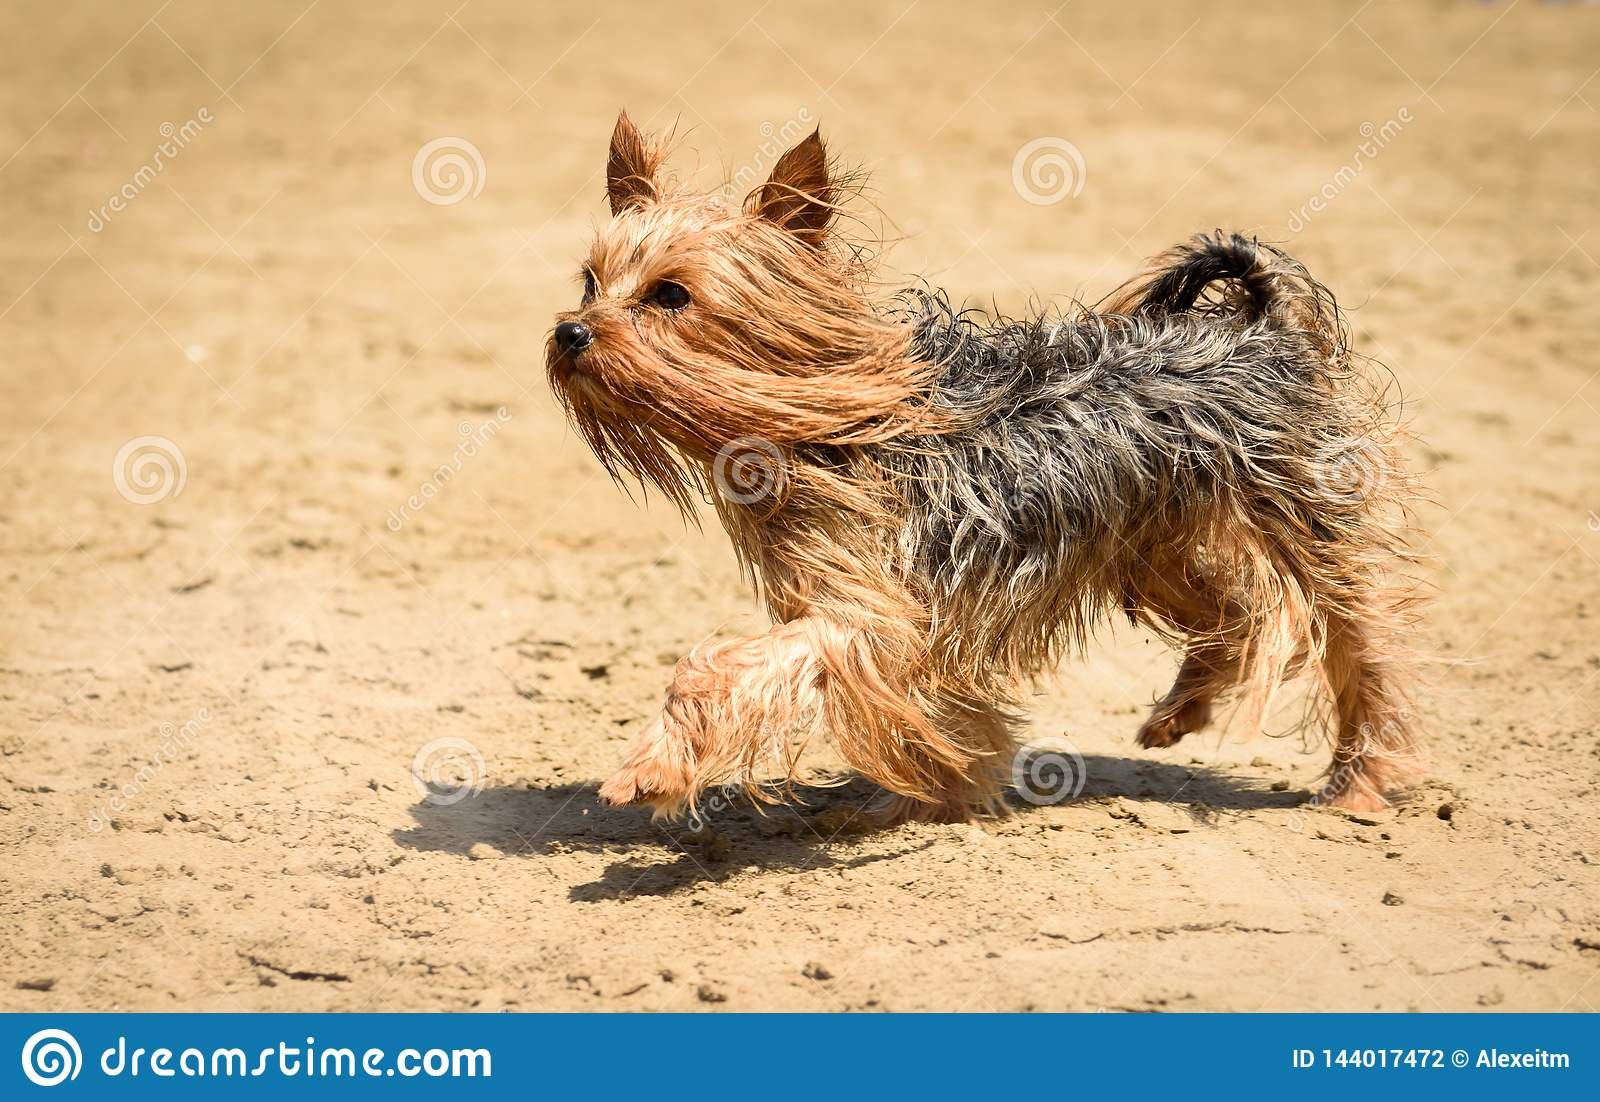 Yorkshire Terrier Dog With Long Hair Walking And Playing On Beach